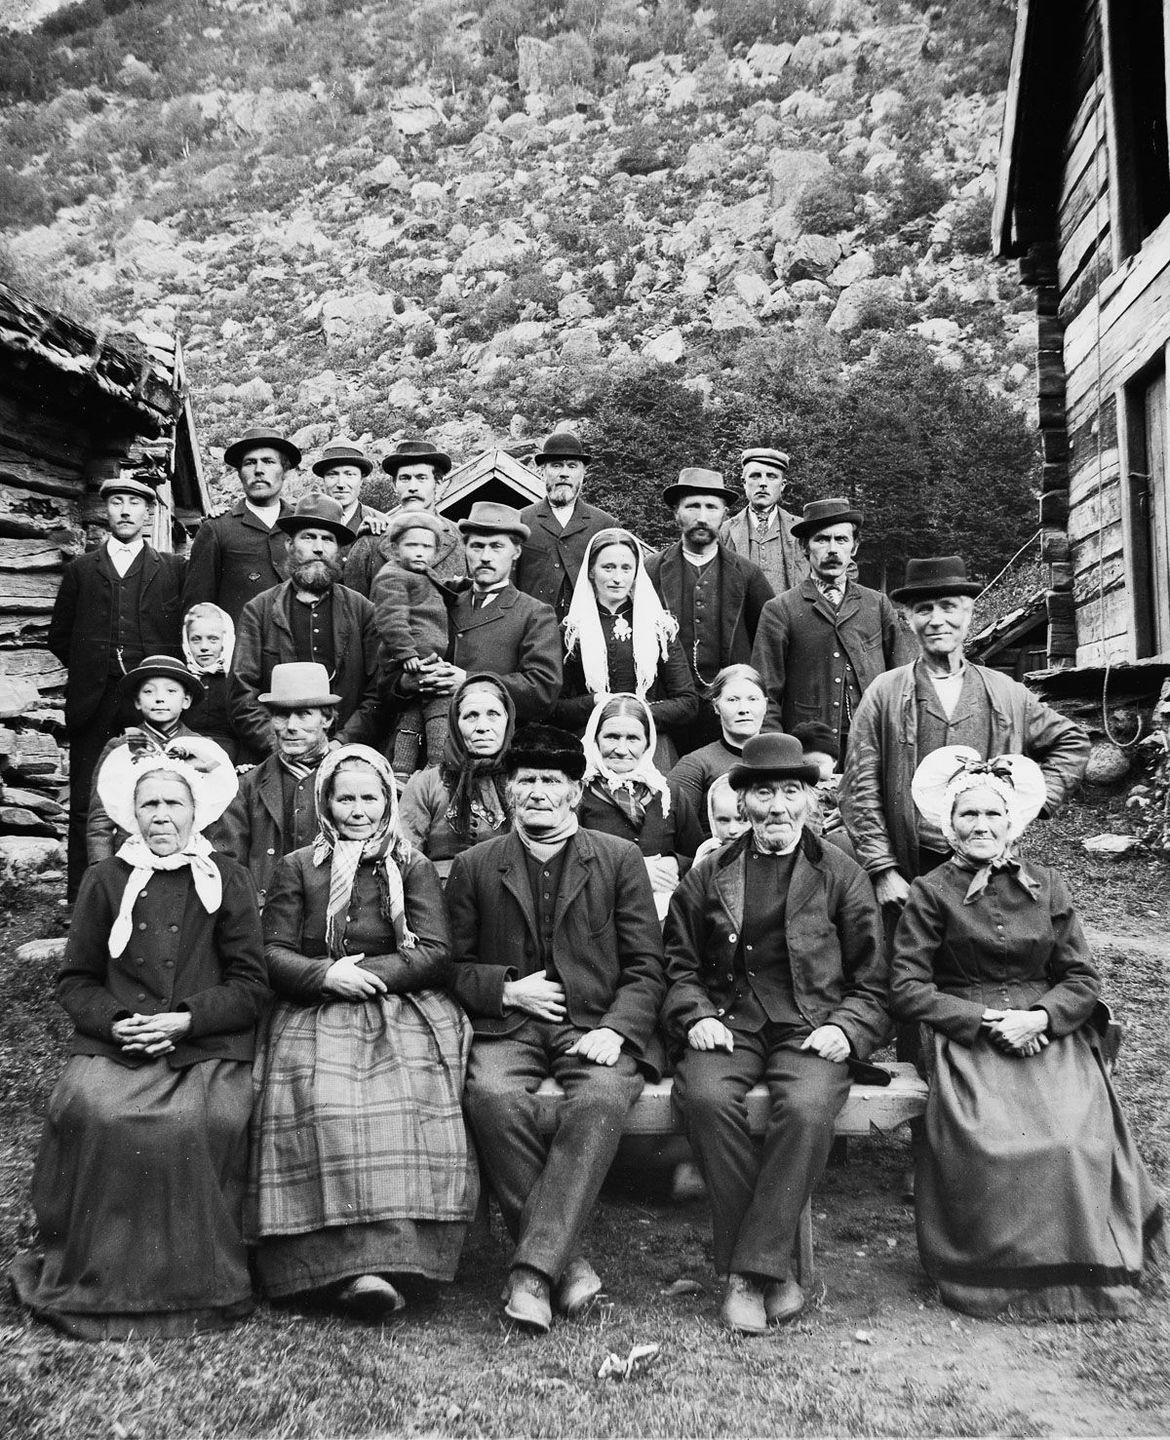 Stunning 1900 Images Record Norwegian Villagers Amid Epic Landscapes Norway Norwegian People Norway Travel